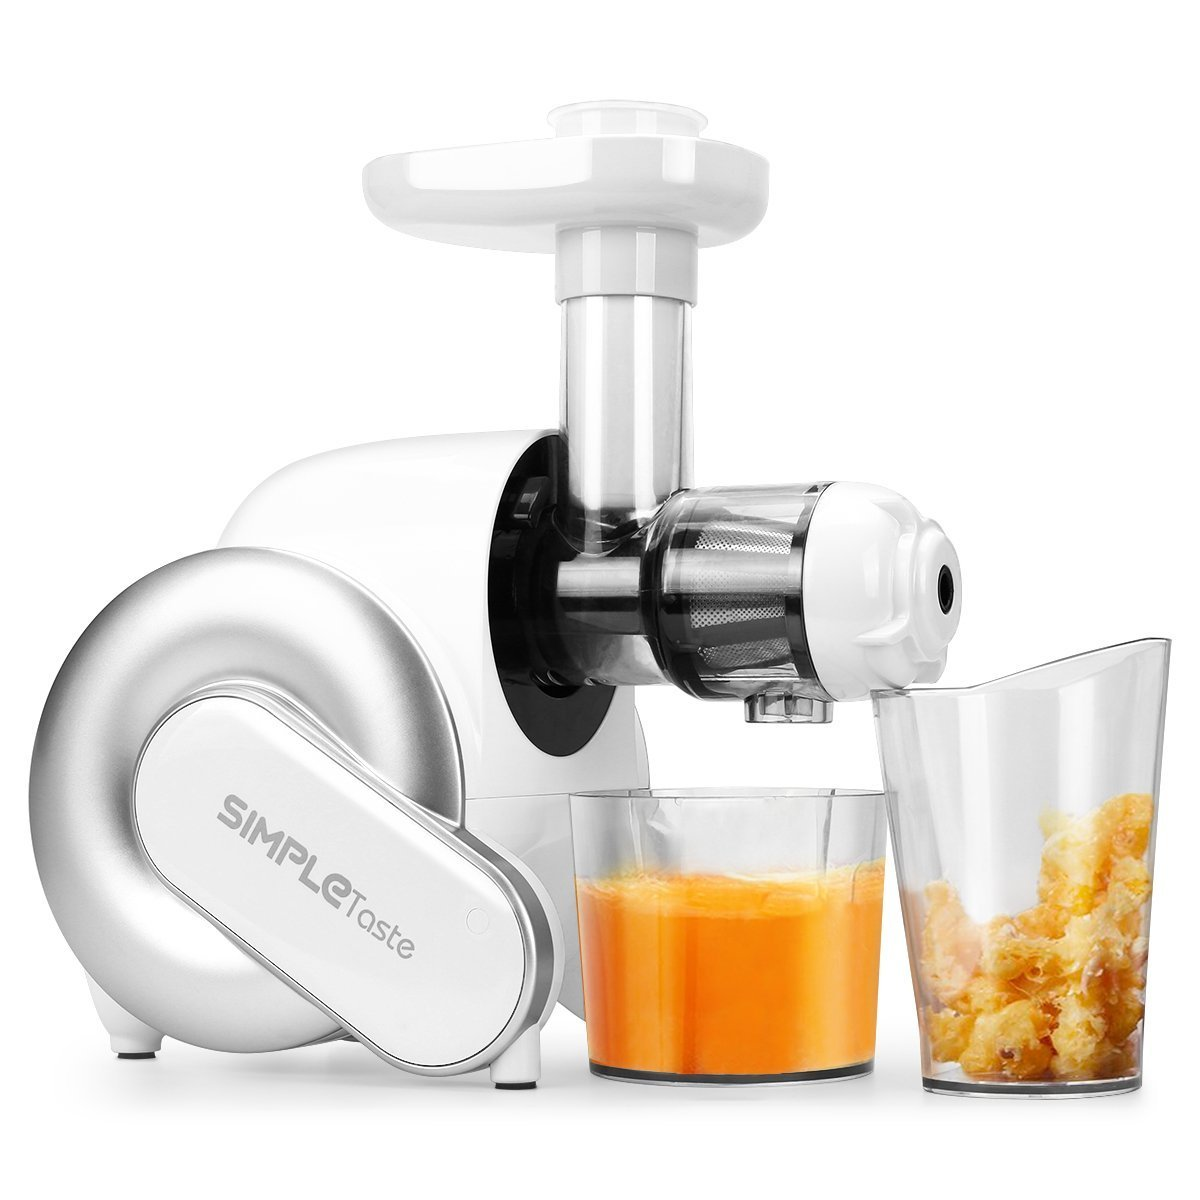 SimpleTaste Masticating Juicer, Slow Juice Extractor BPA FREE with Quiet Motor & Cleaning Brush for High Nutrient Fruit and Vegetable Juice 1byone Products Inc.